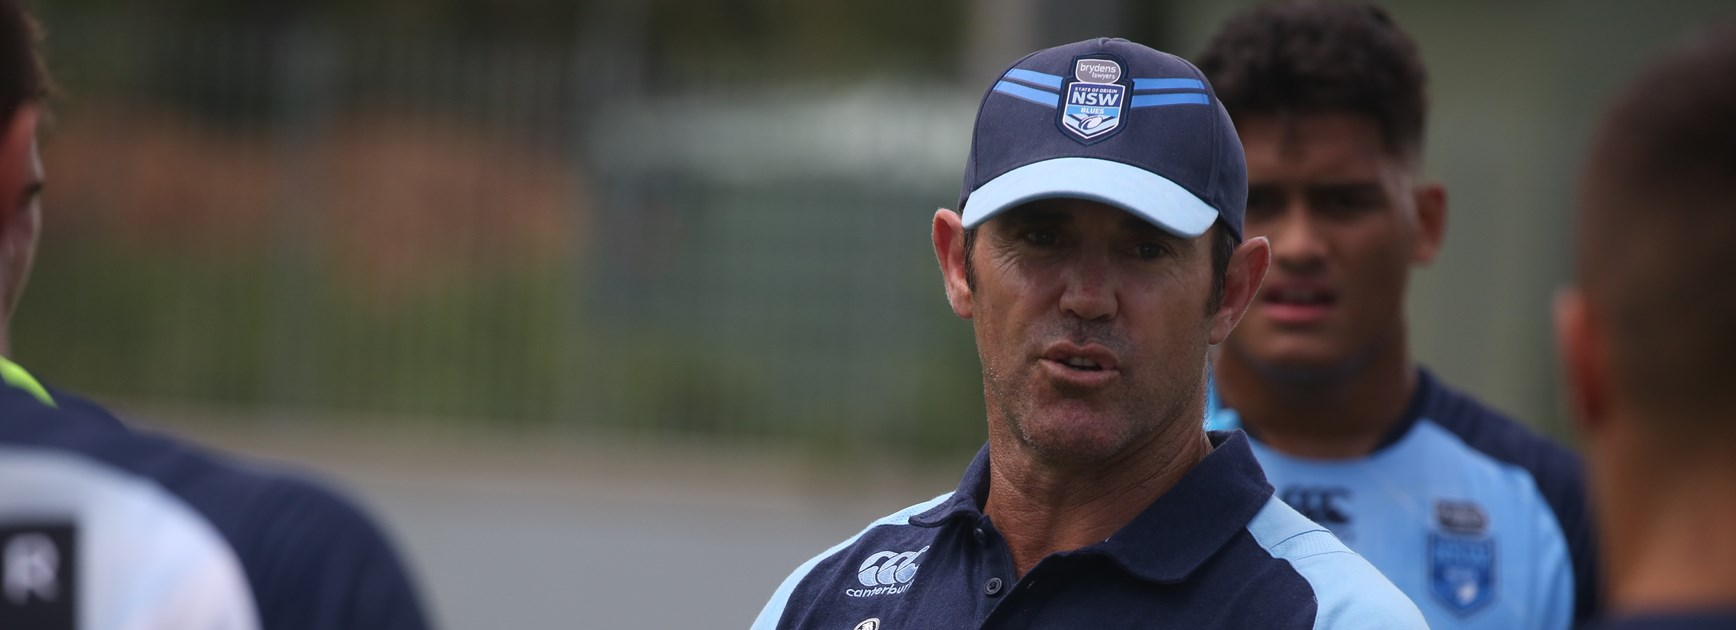 Fittler impressed by NSW's generation next